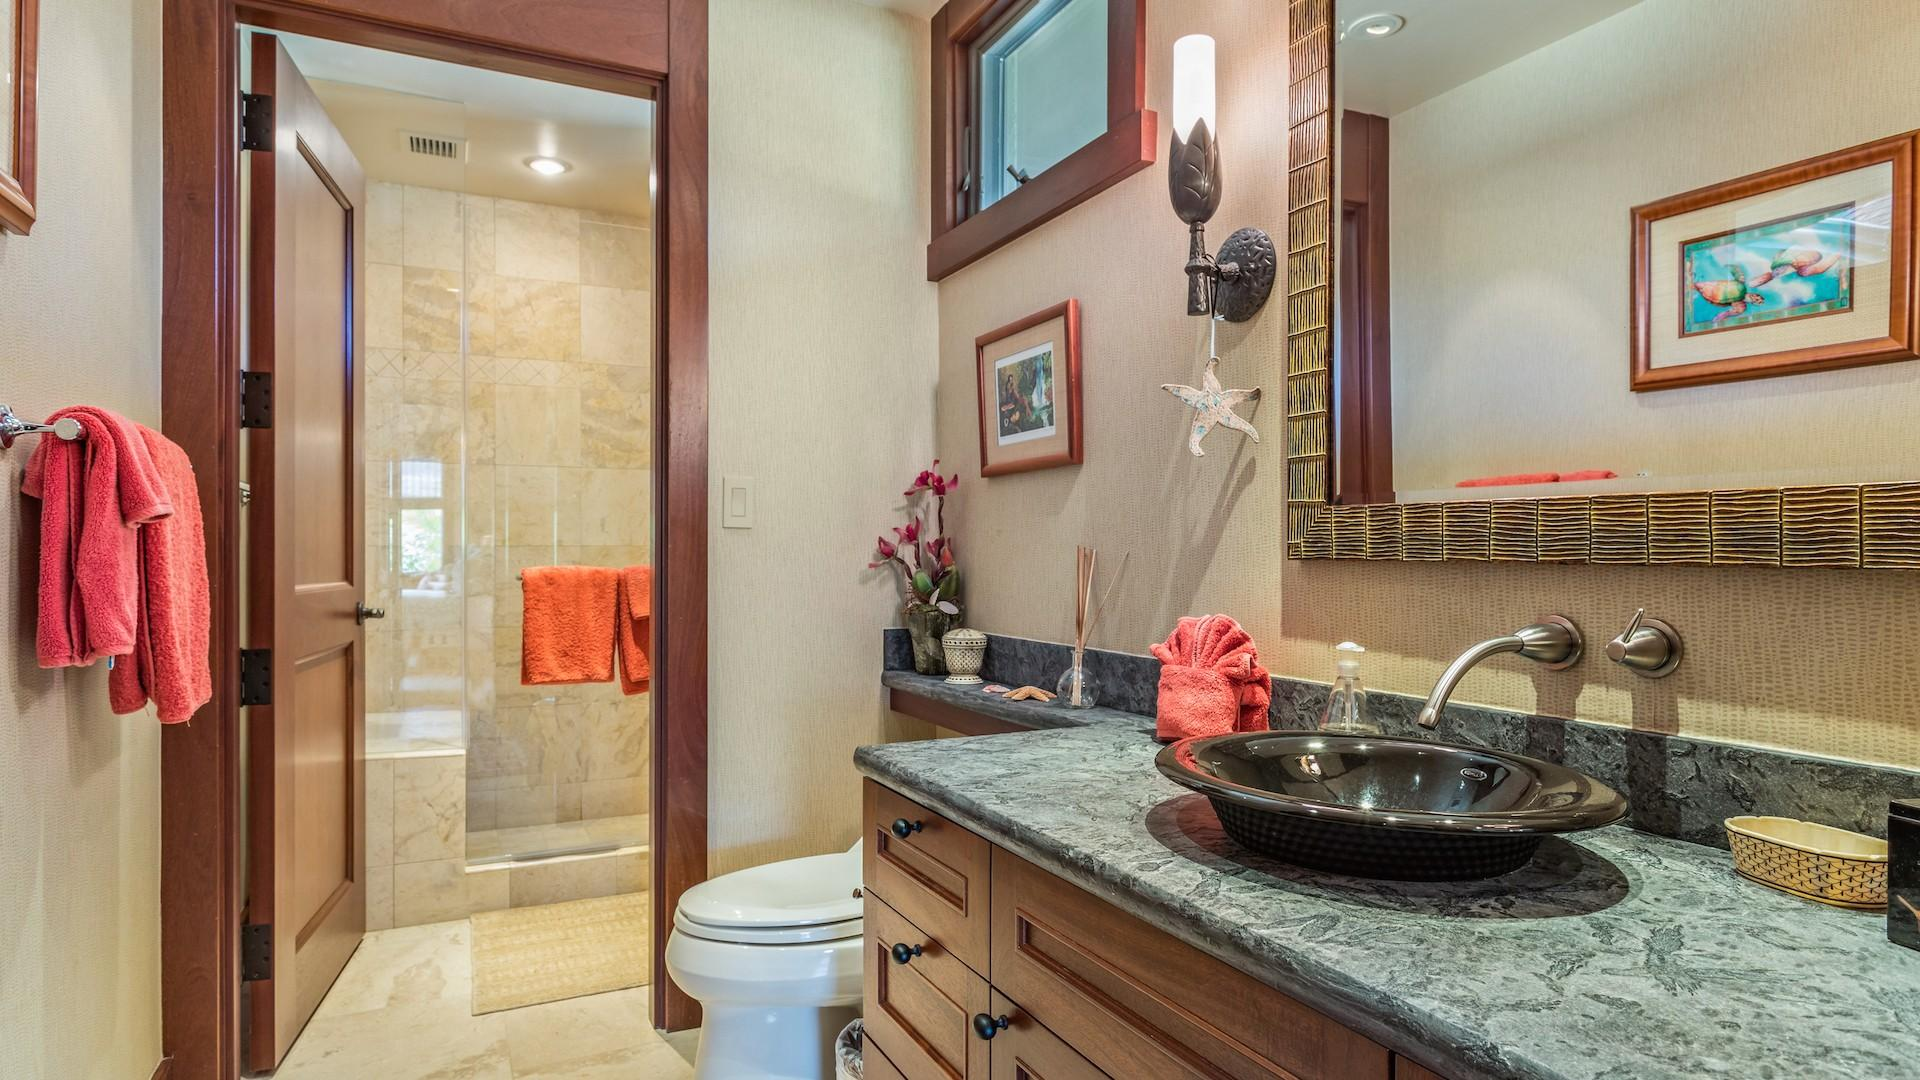 Second Bath with Walk-In Shower, Adjacent to Second Bedroom.